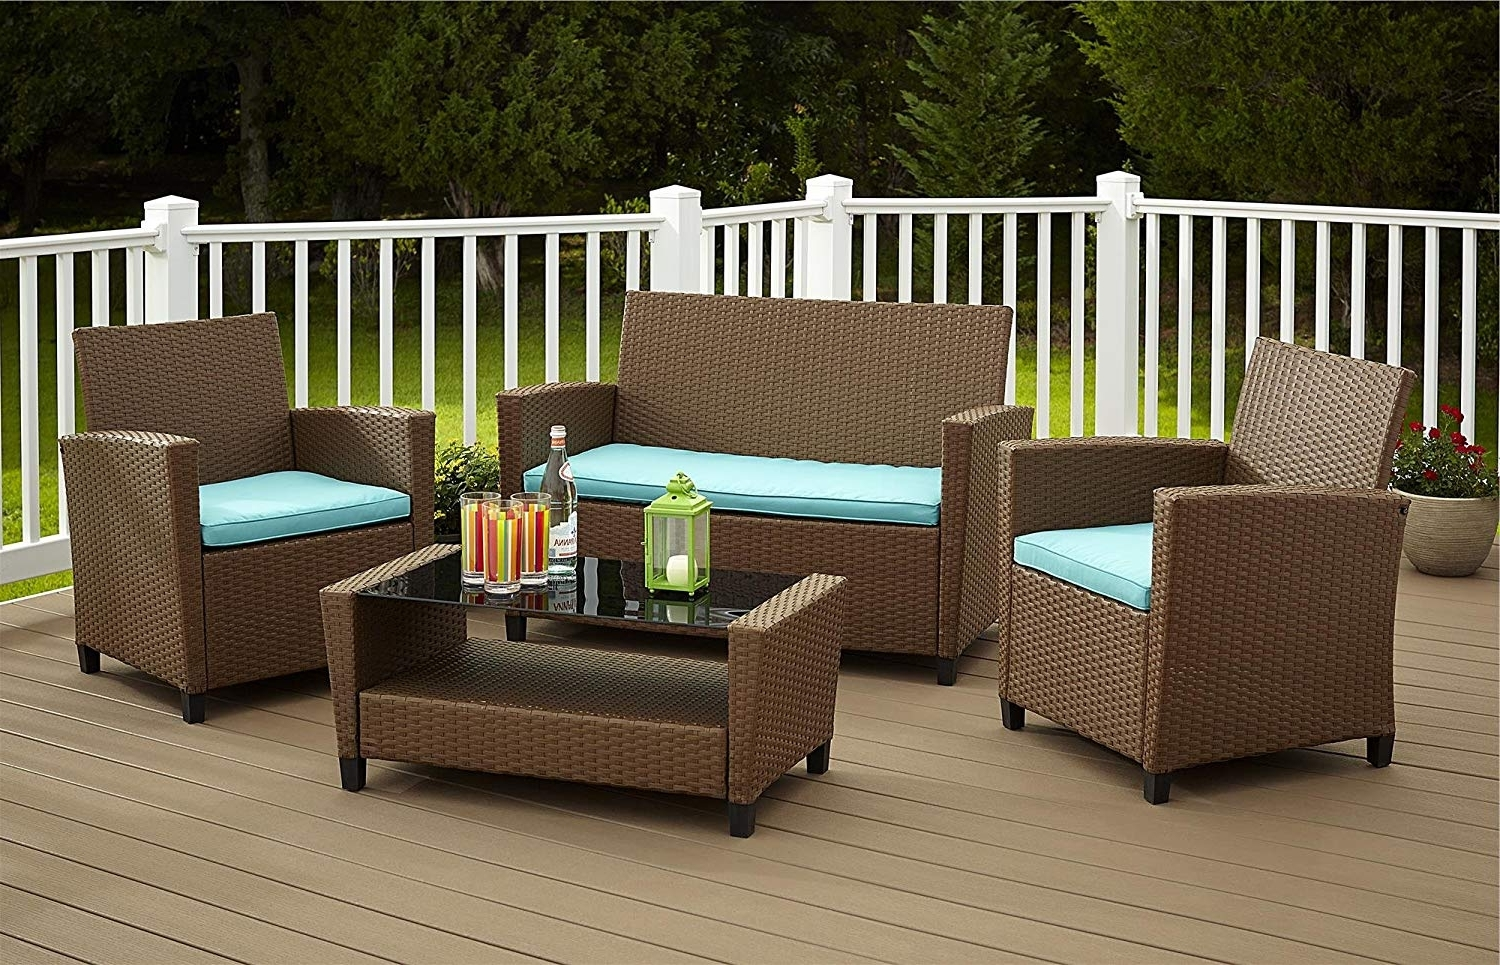 Terrific Resin Outdoor Furniture Amazon Com Cosco Products 4 Piece Regarding Most Recently Released Resin Conversation Patio Sets (View 11 of 15)